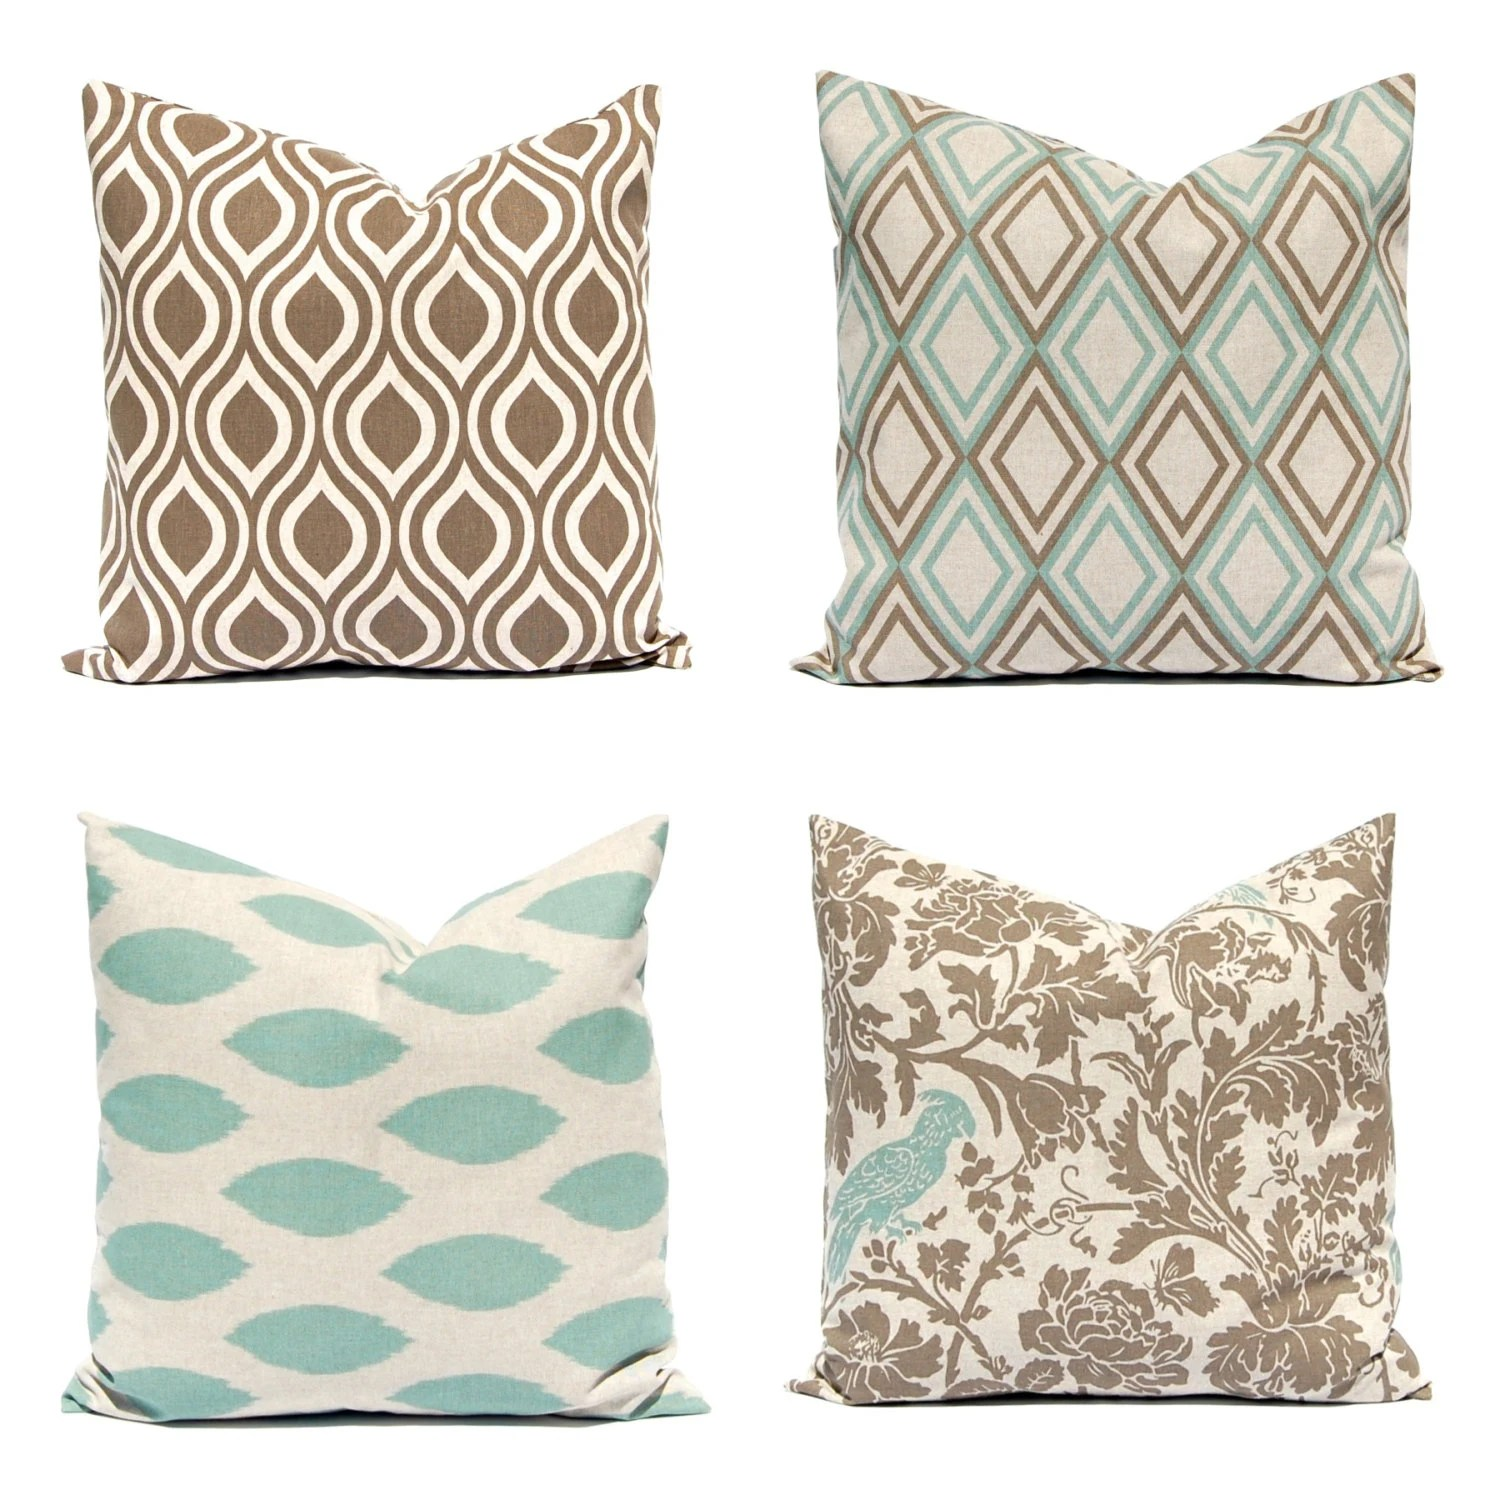 pillow decorative for sofa firm cushion couch covers pillows seafoam green